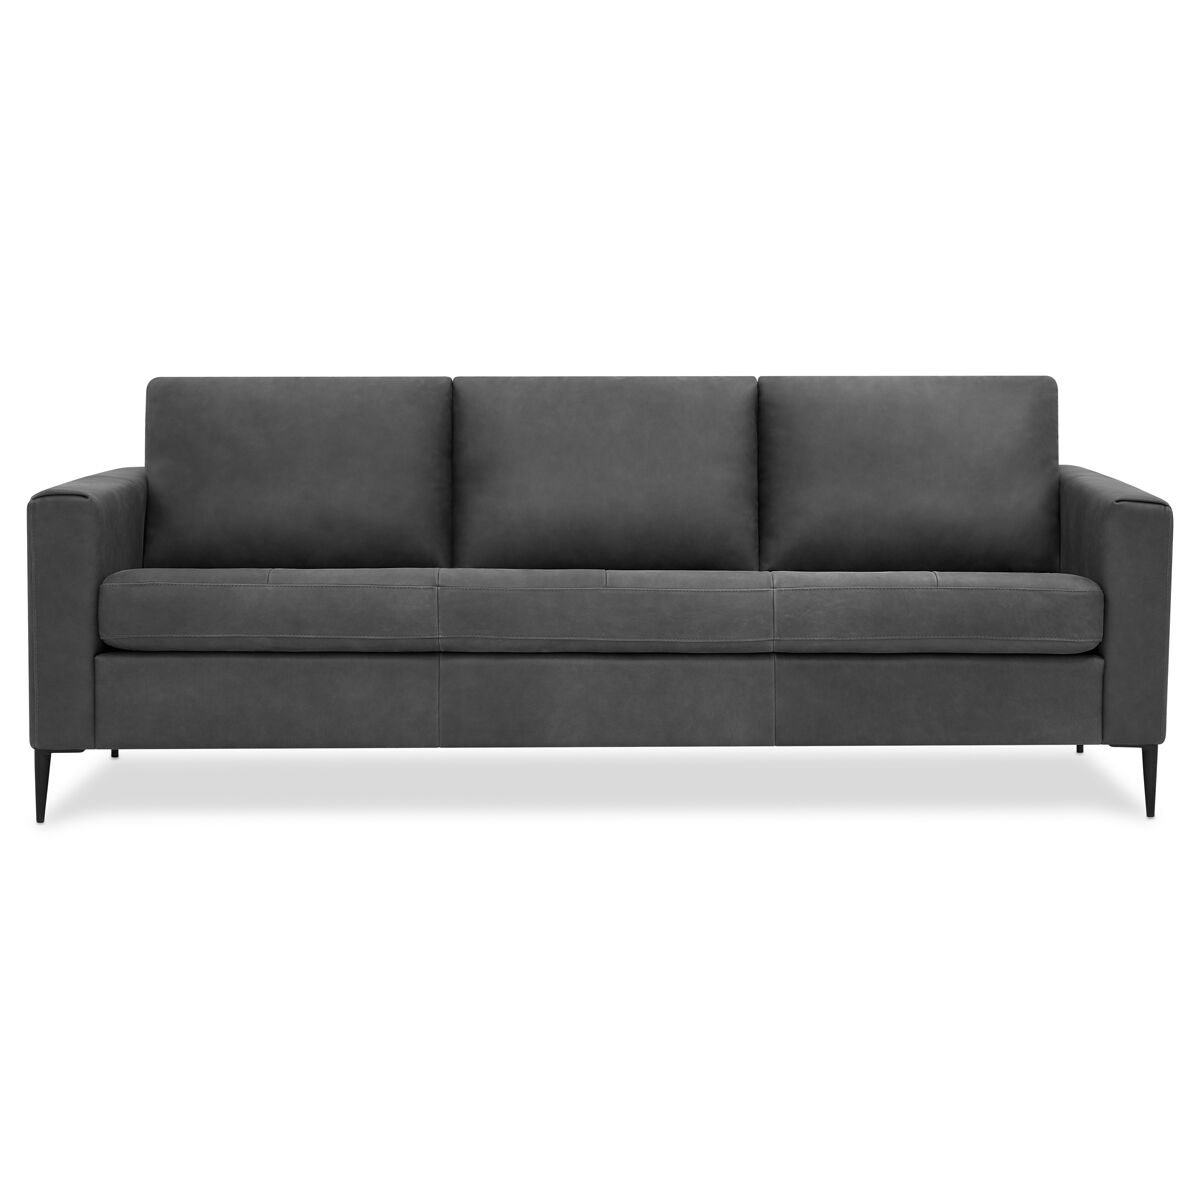 roll arm sofa canada best sofas for dogs owners living urban barn lucca leather attica slate